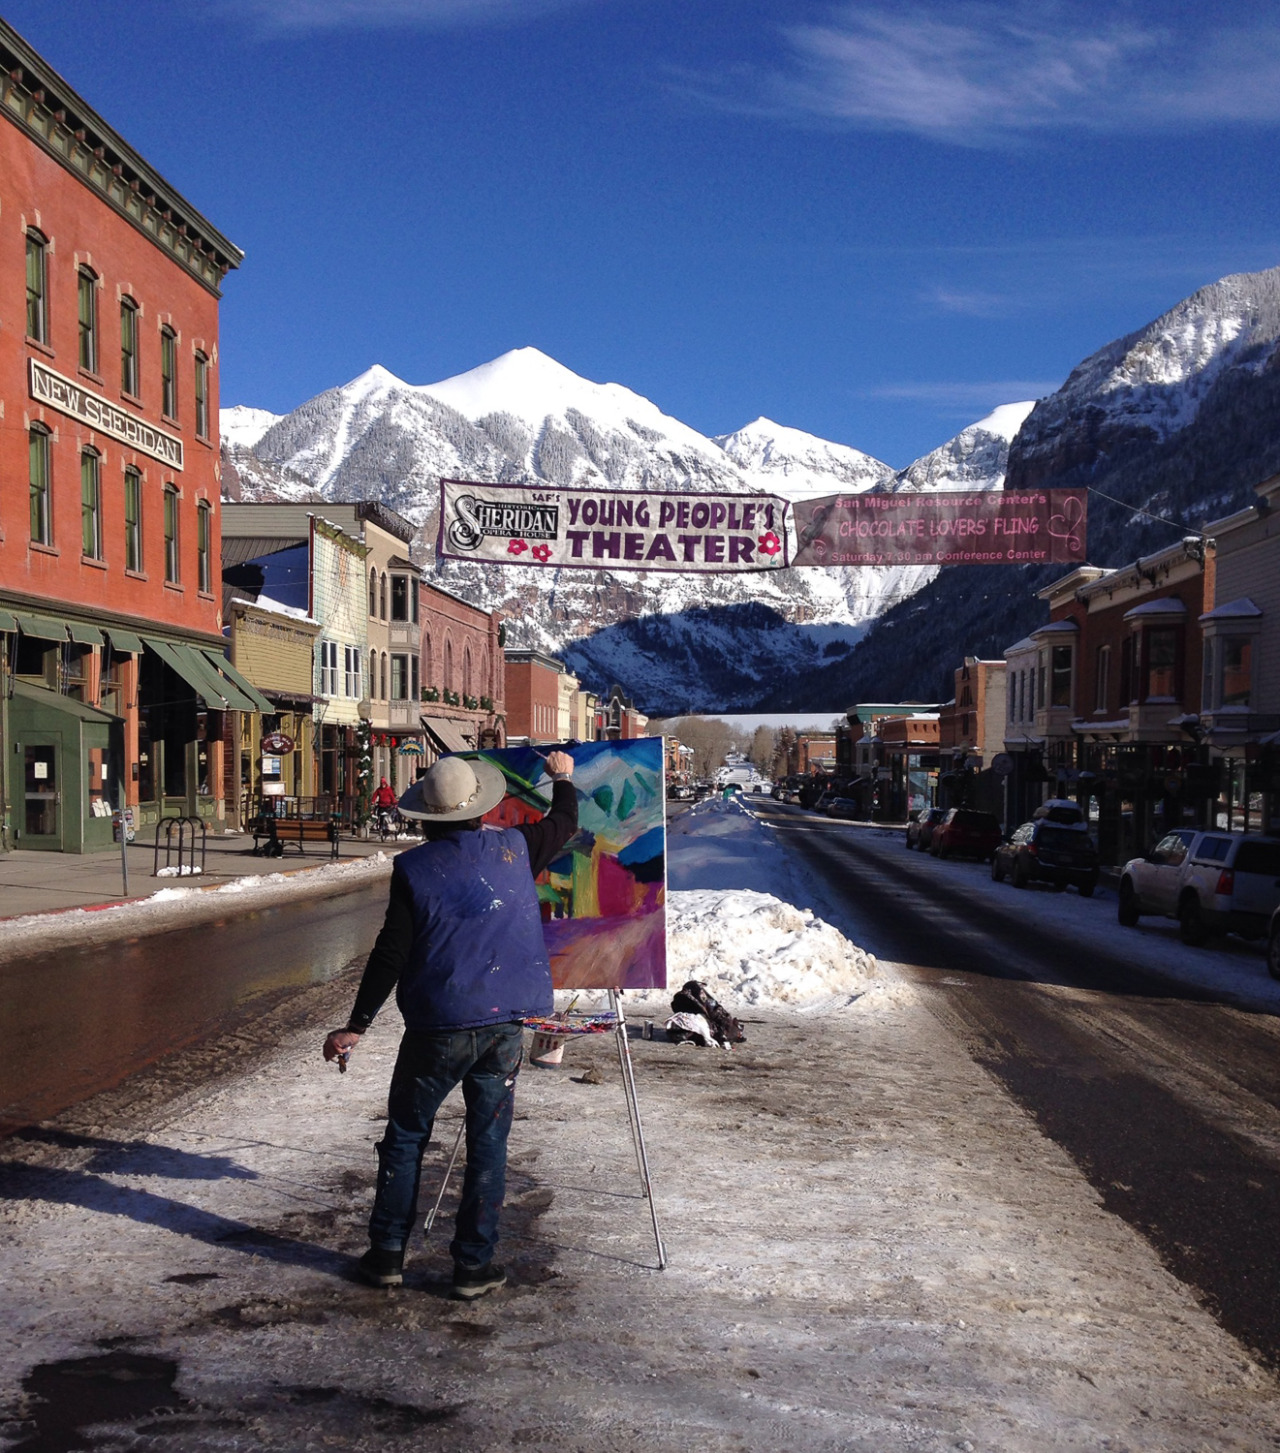 An artist paints in the middle of the street in Telluride, Colorado